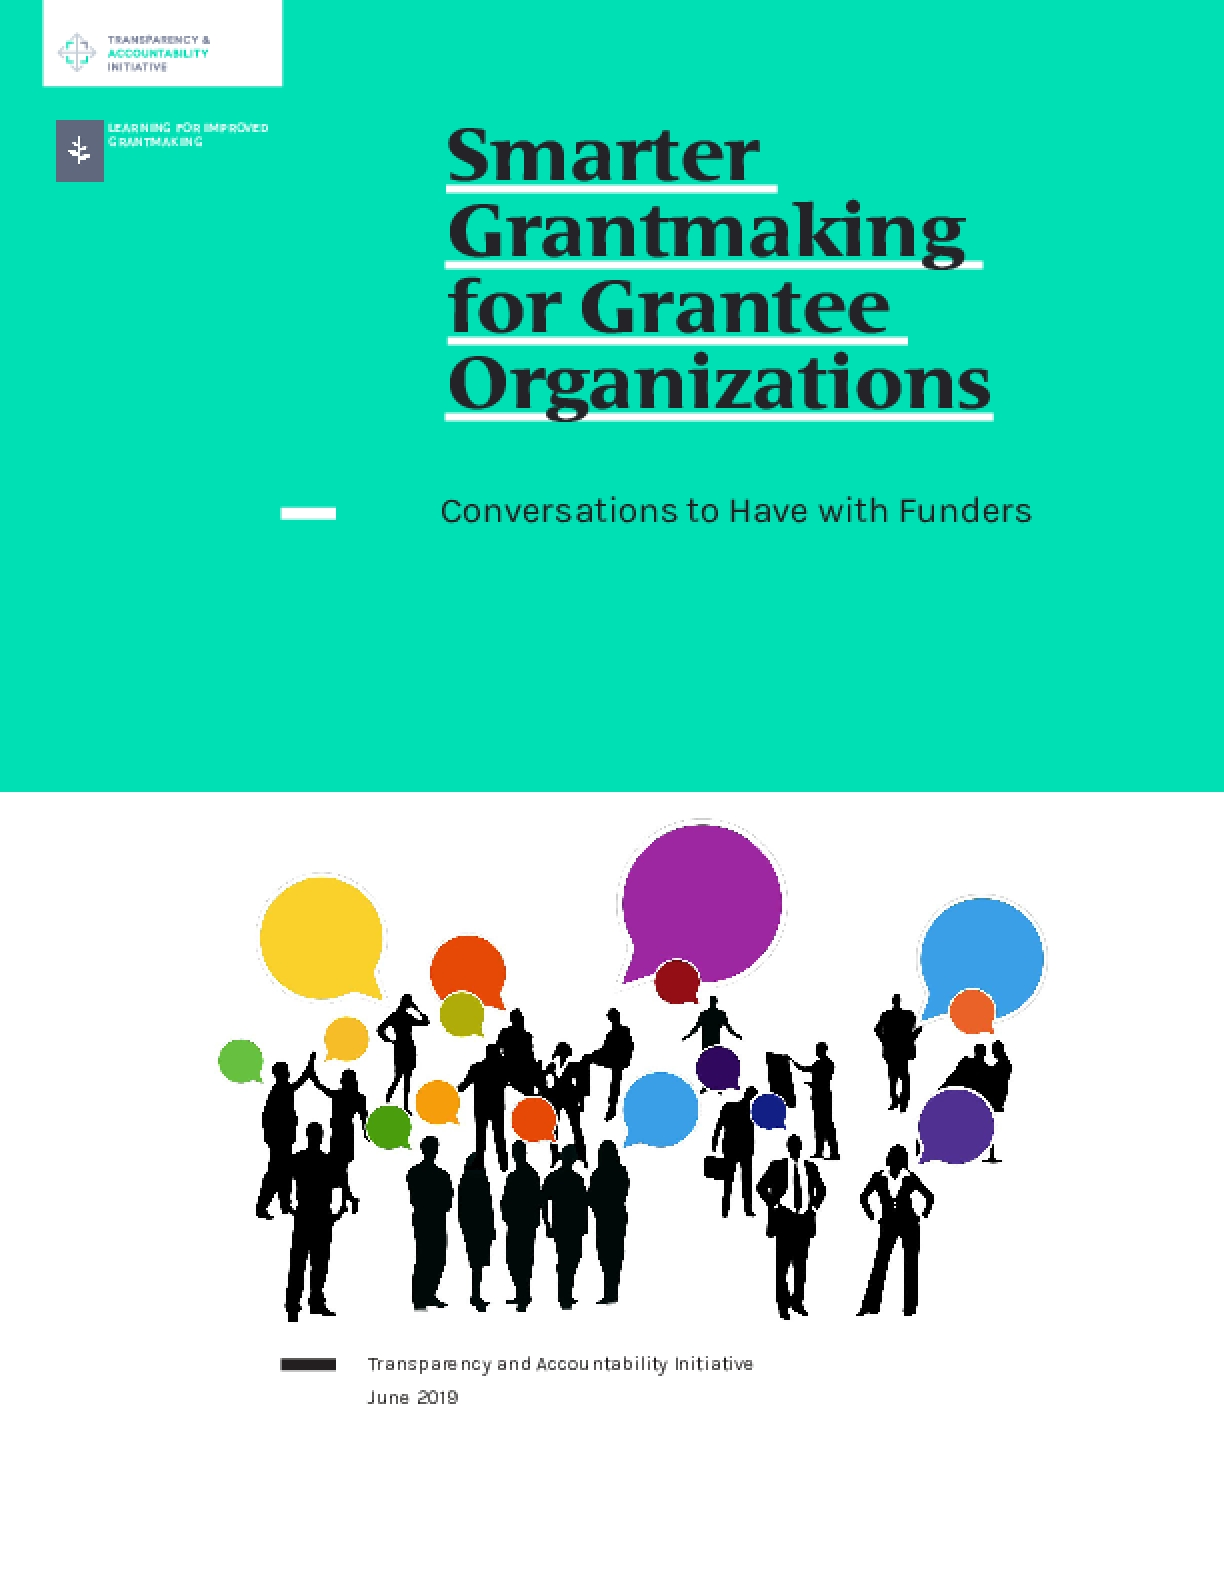 Smarter Grantmaking for Grantee Organizations: Conversations to Have with Funders